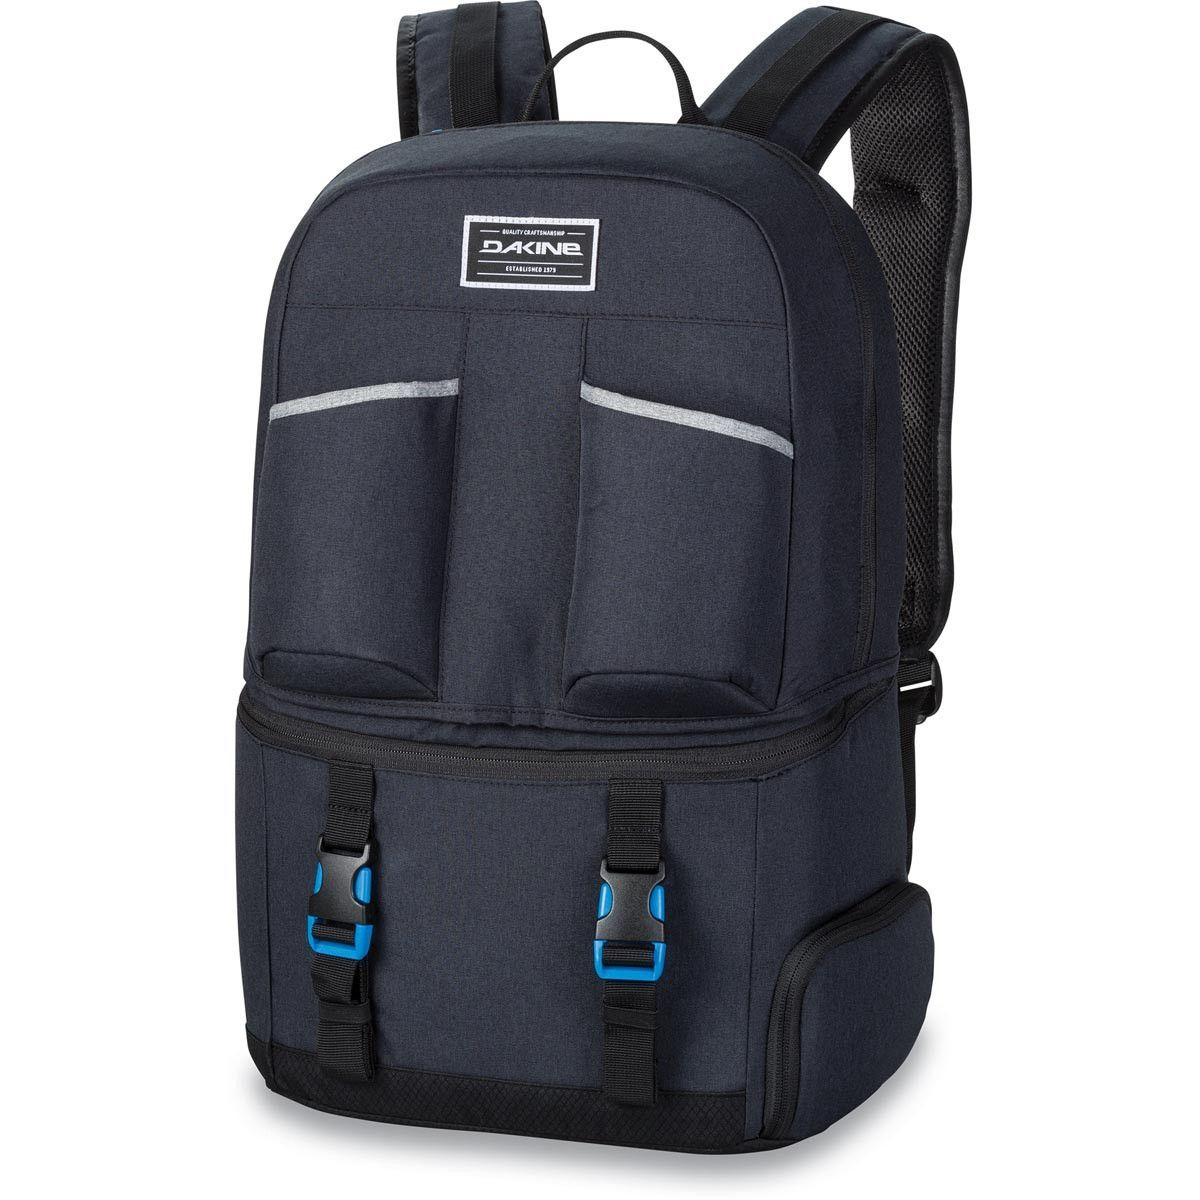 8d4b160e993 Party Pack 28L 17Sp   Products   Party packs, Backpacks, Party